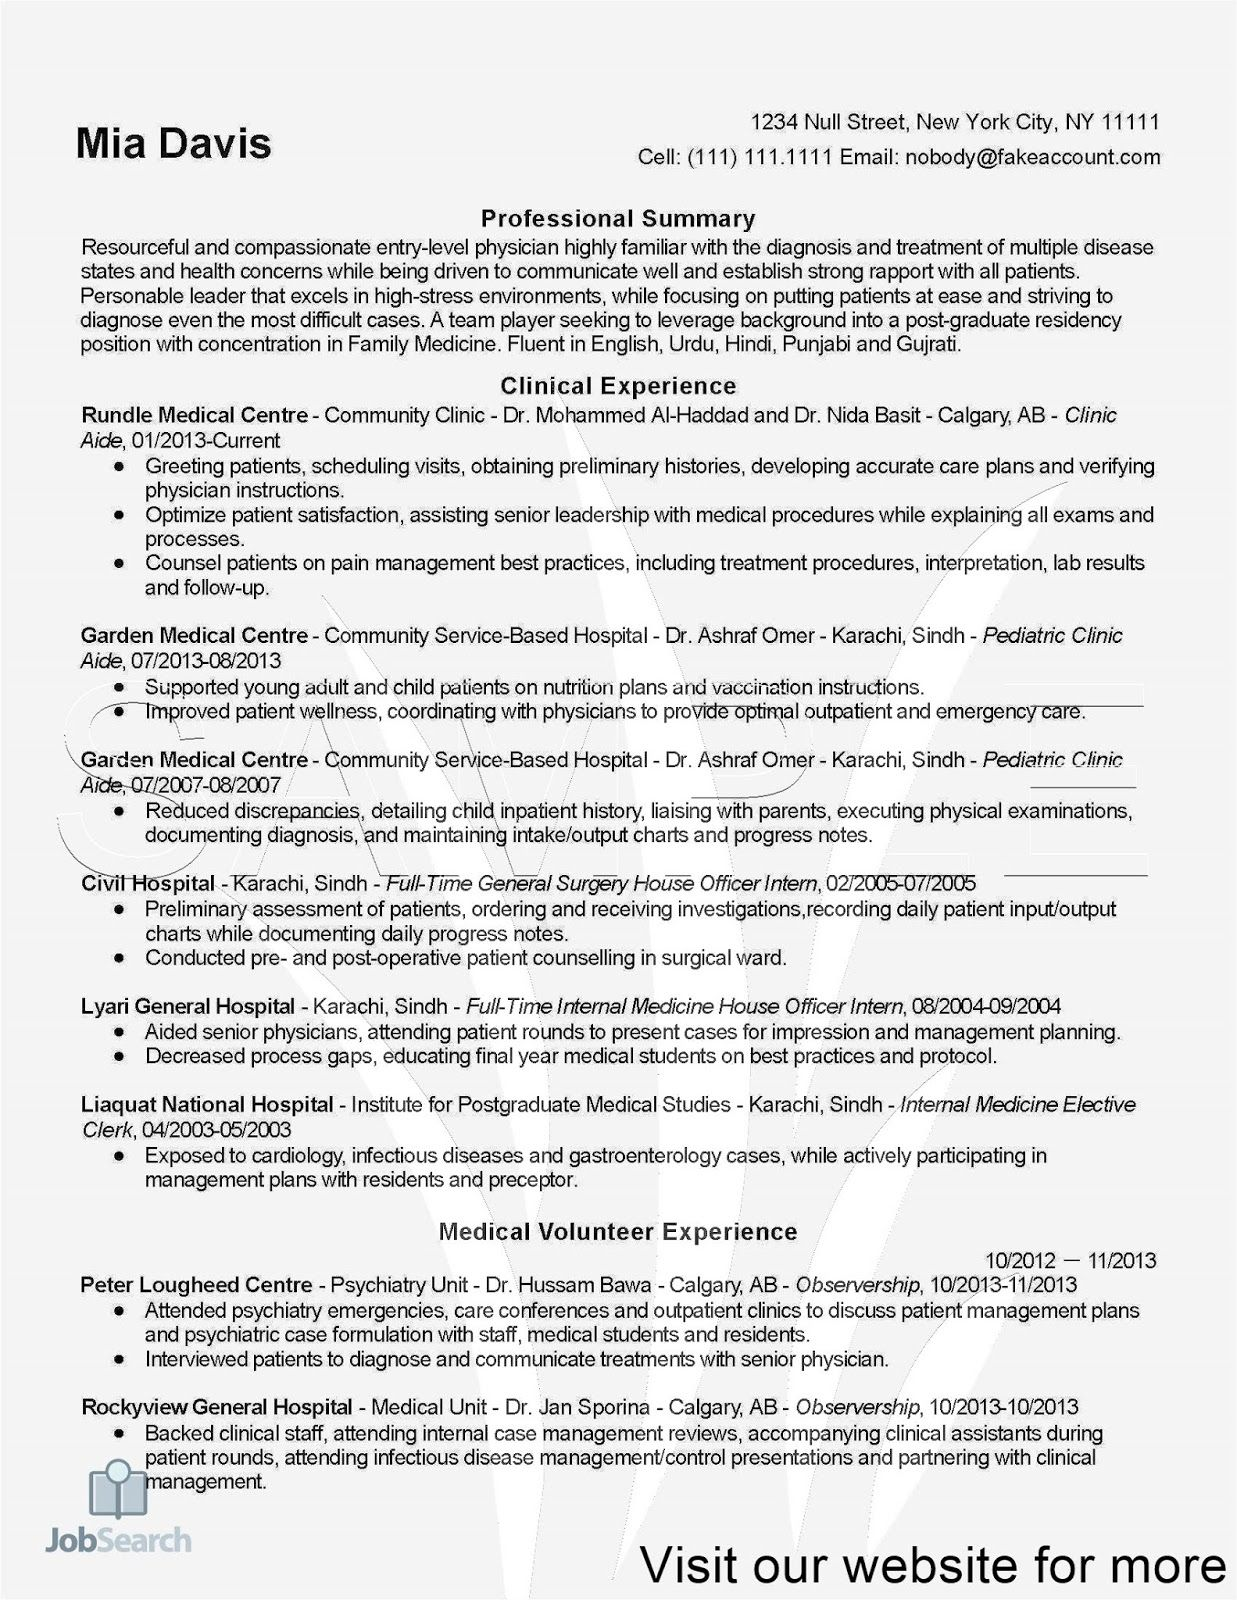 Doctor Resume Templates, Job Interview Tips 2020 in 2020